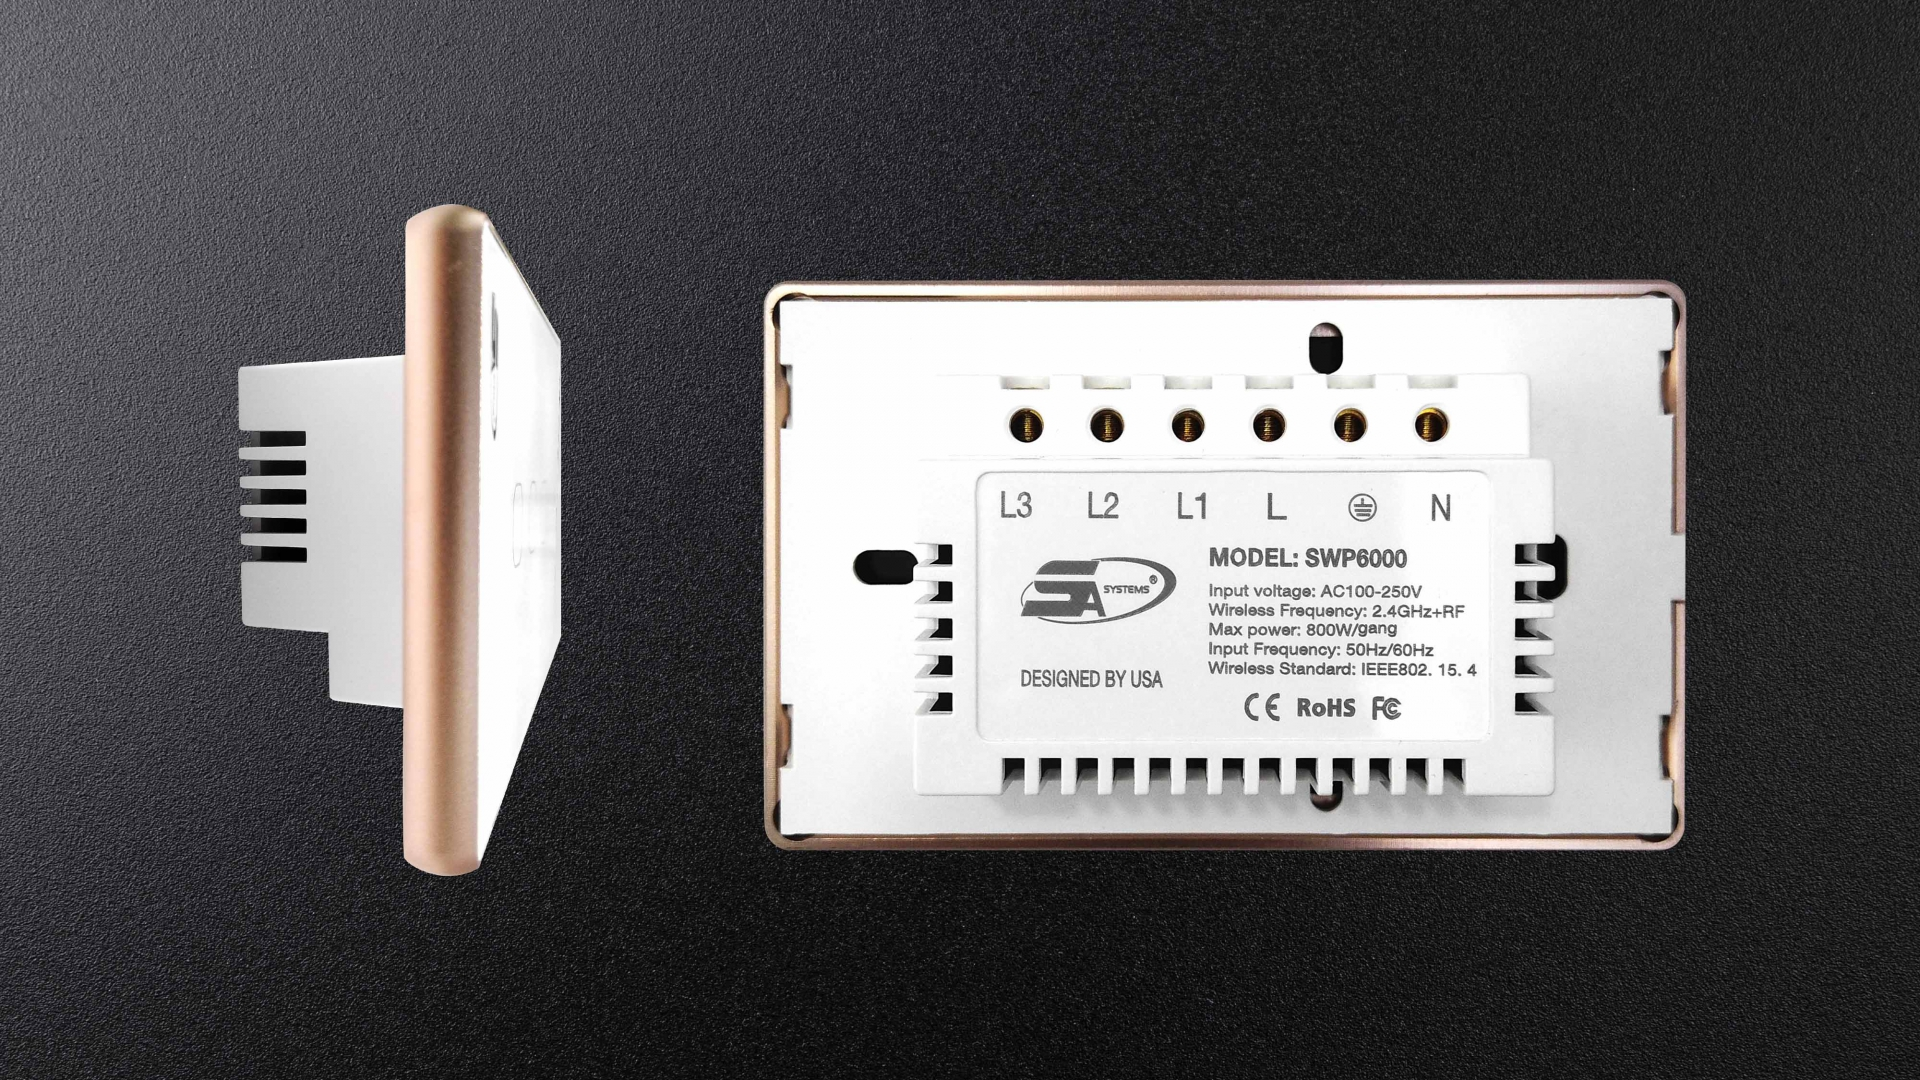 SMART SWITCH 5ASYSTEMS SWP6000 1 LOOP